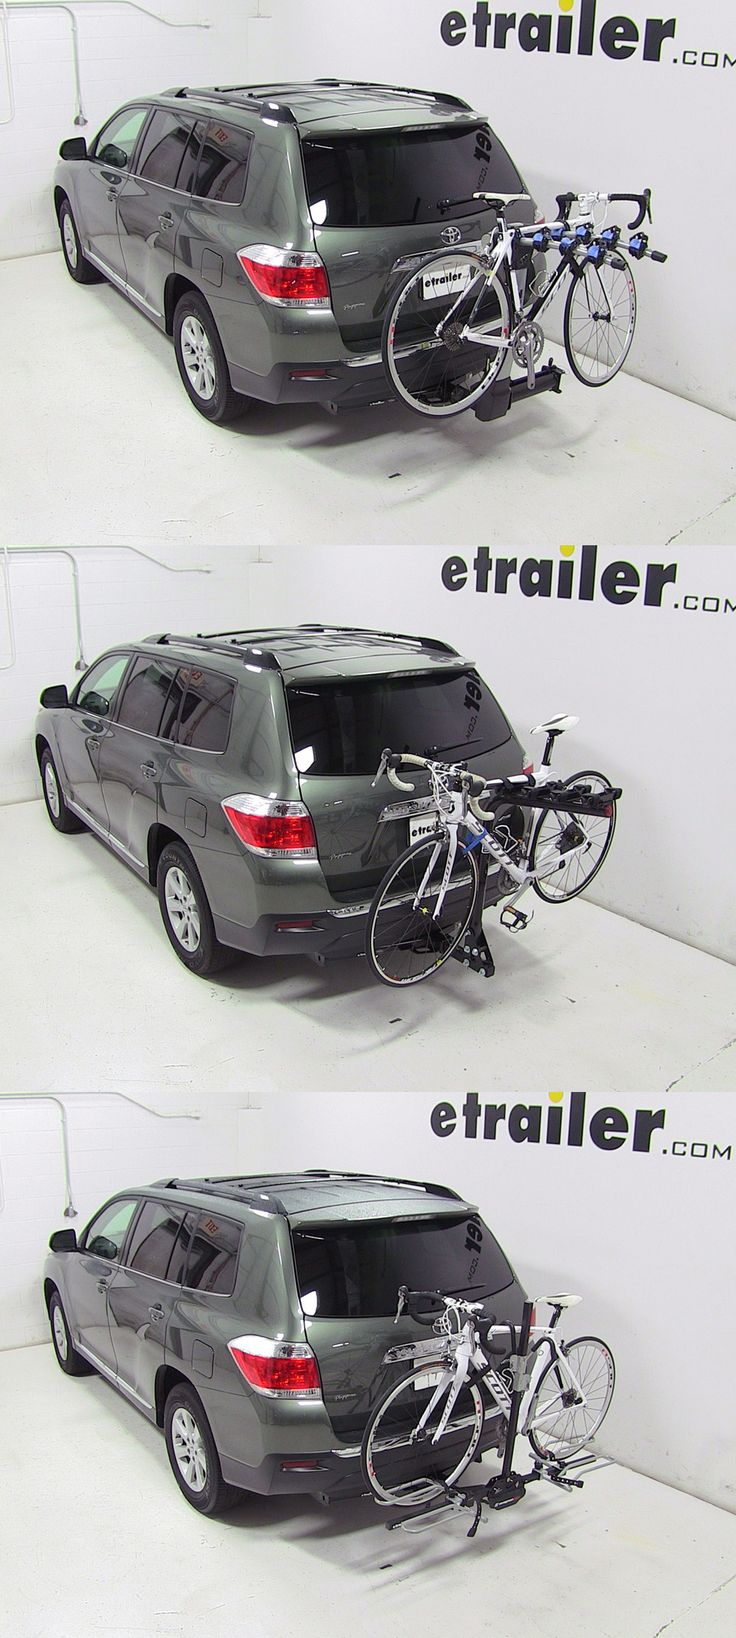 Check out the top 20 best toyota highlander bike racks based on user reviews and functionality